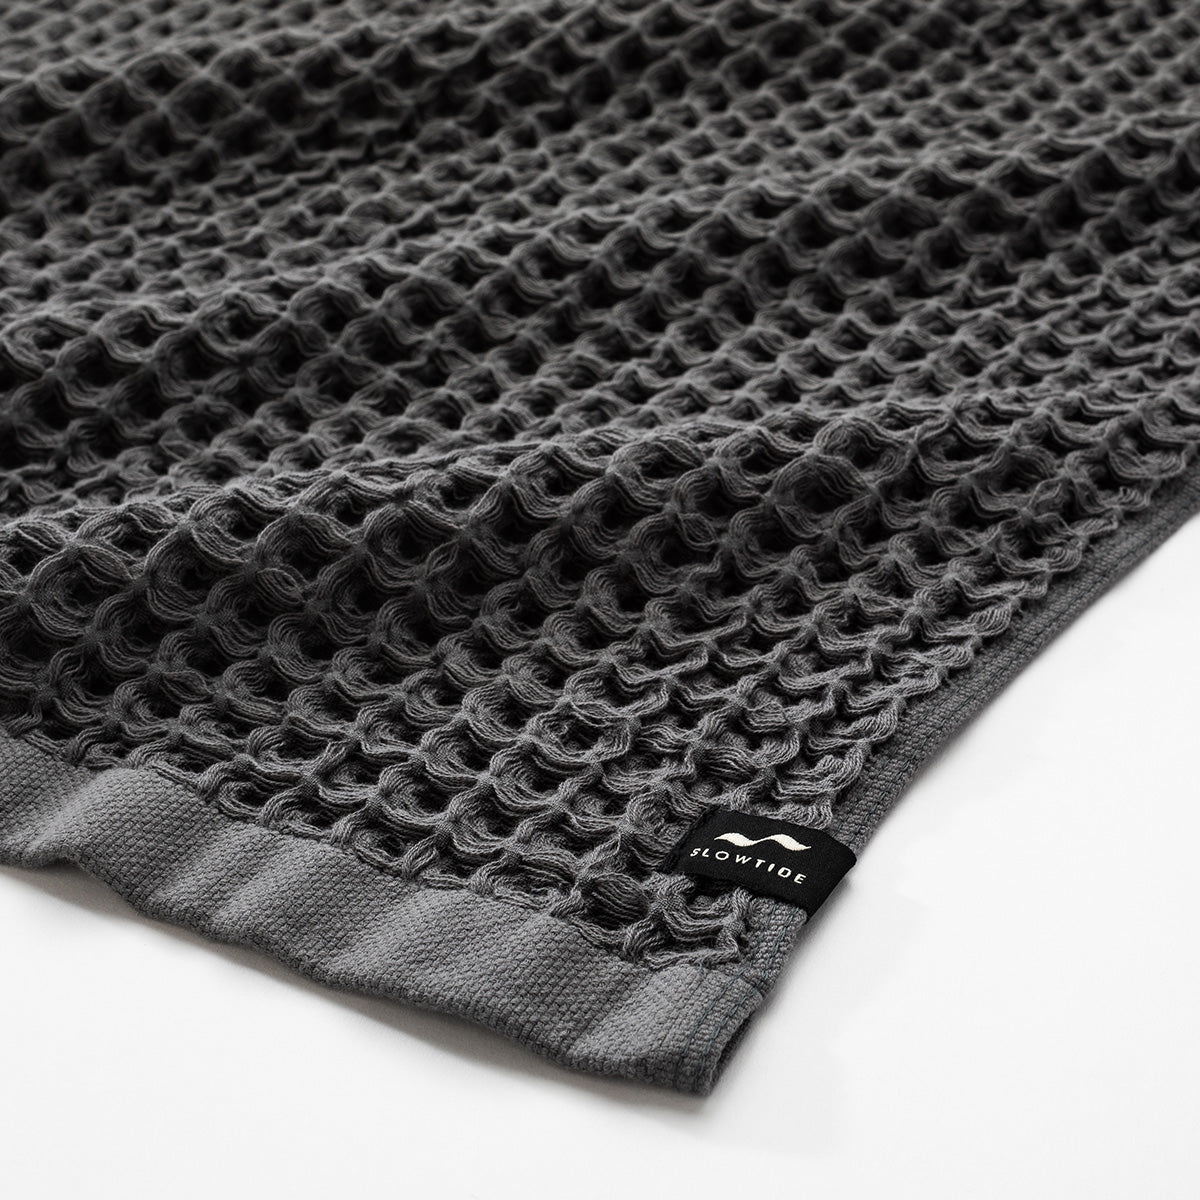 Guild Waffle Towel - Charcoal